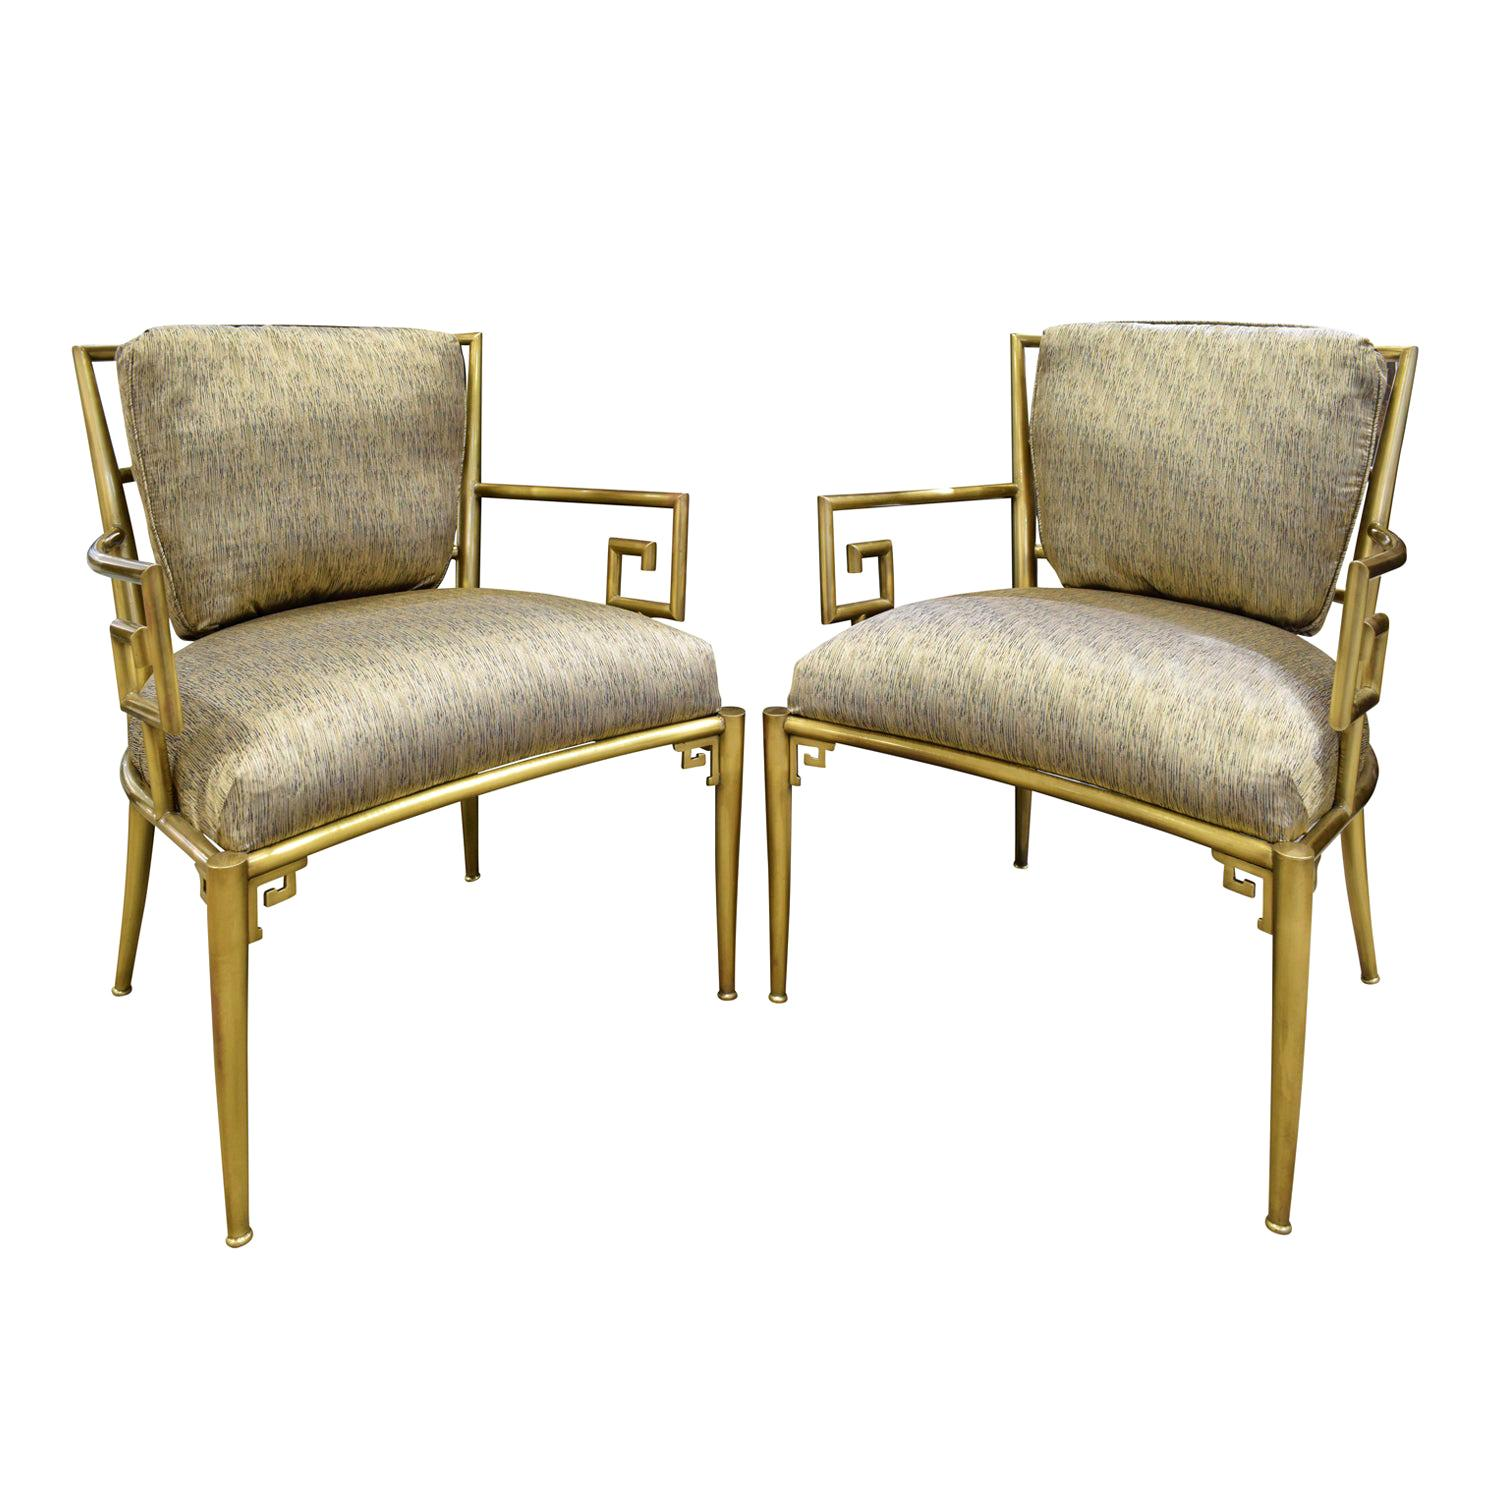 Mastercraft Pair of Greek Key Lounge Chairs in Brass, 1960s